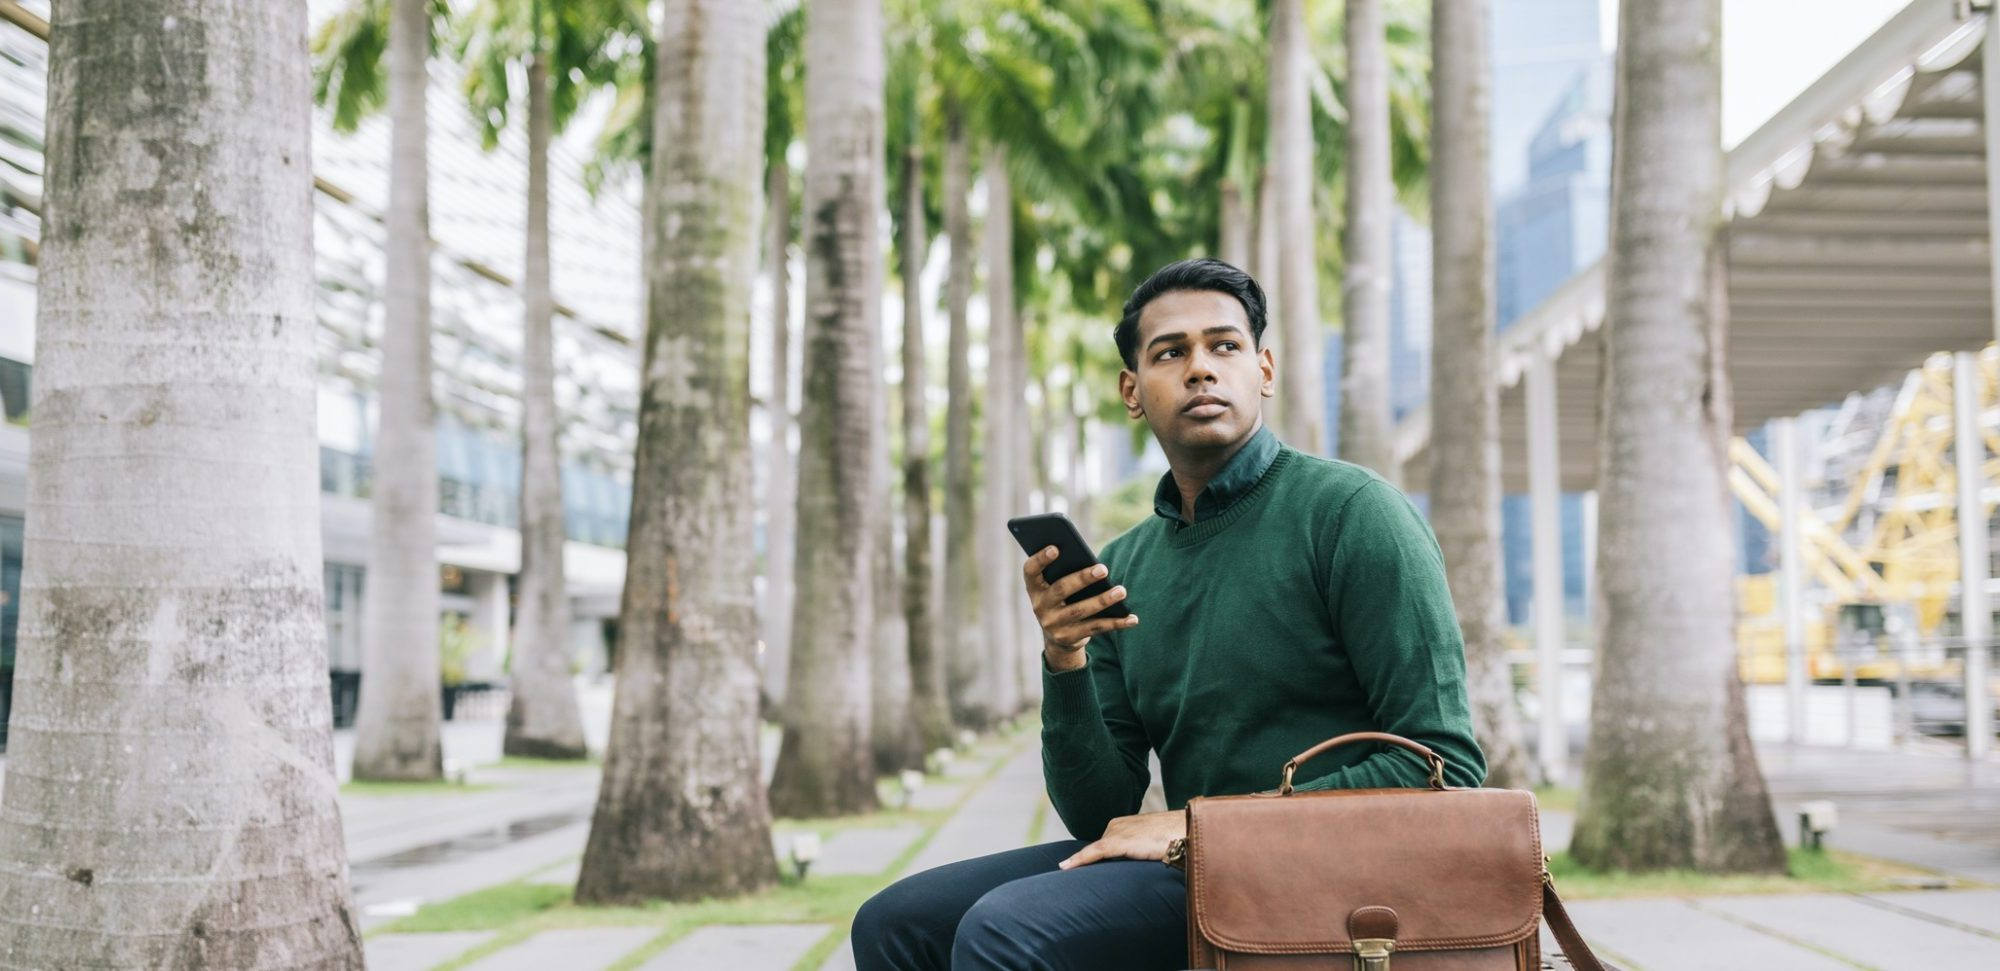 A future leader sitting on a bench outside holding his phone with his briefcase on the side.